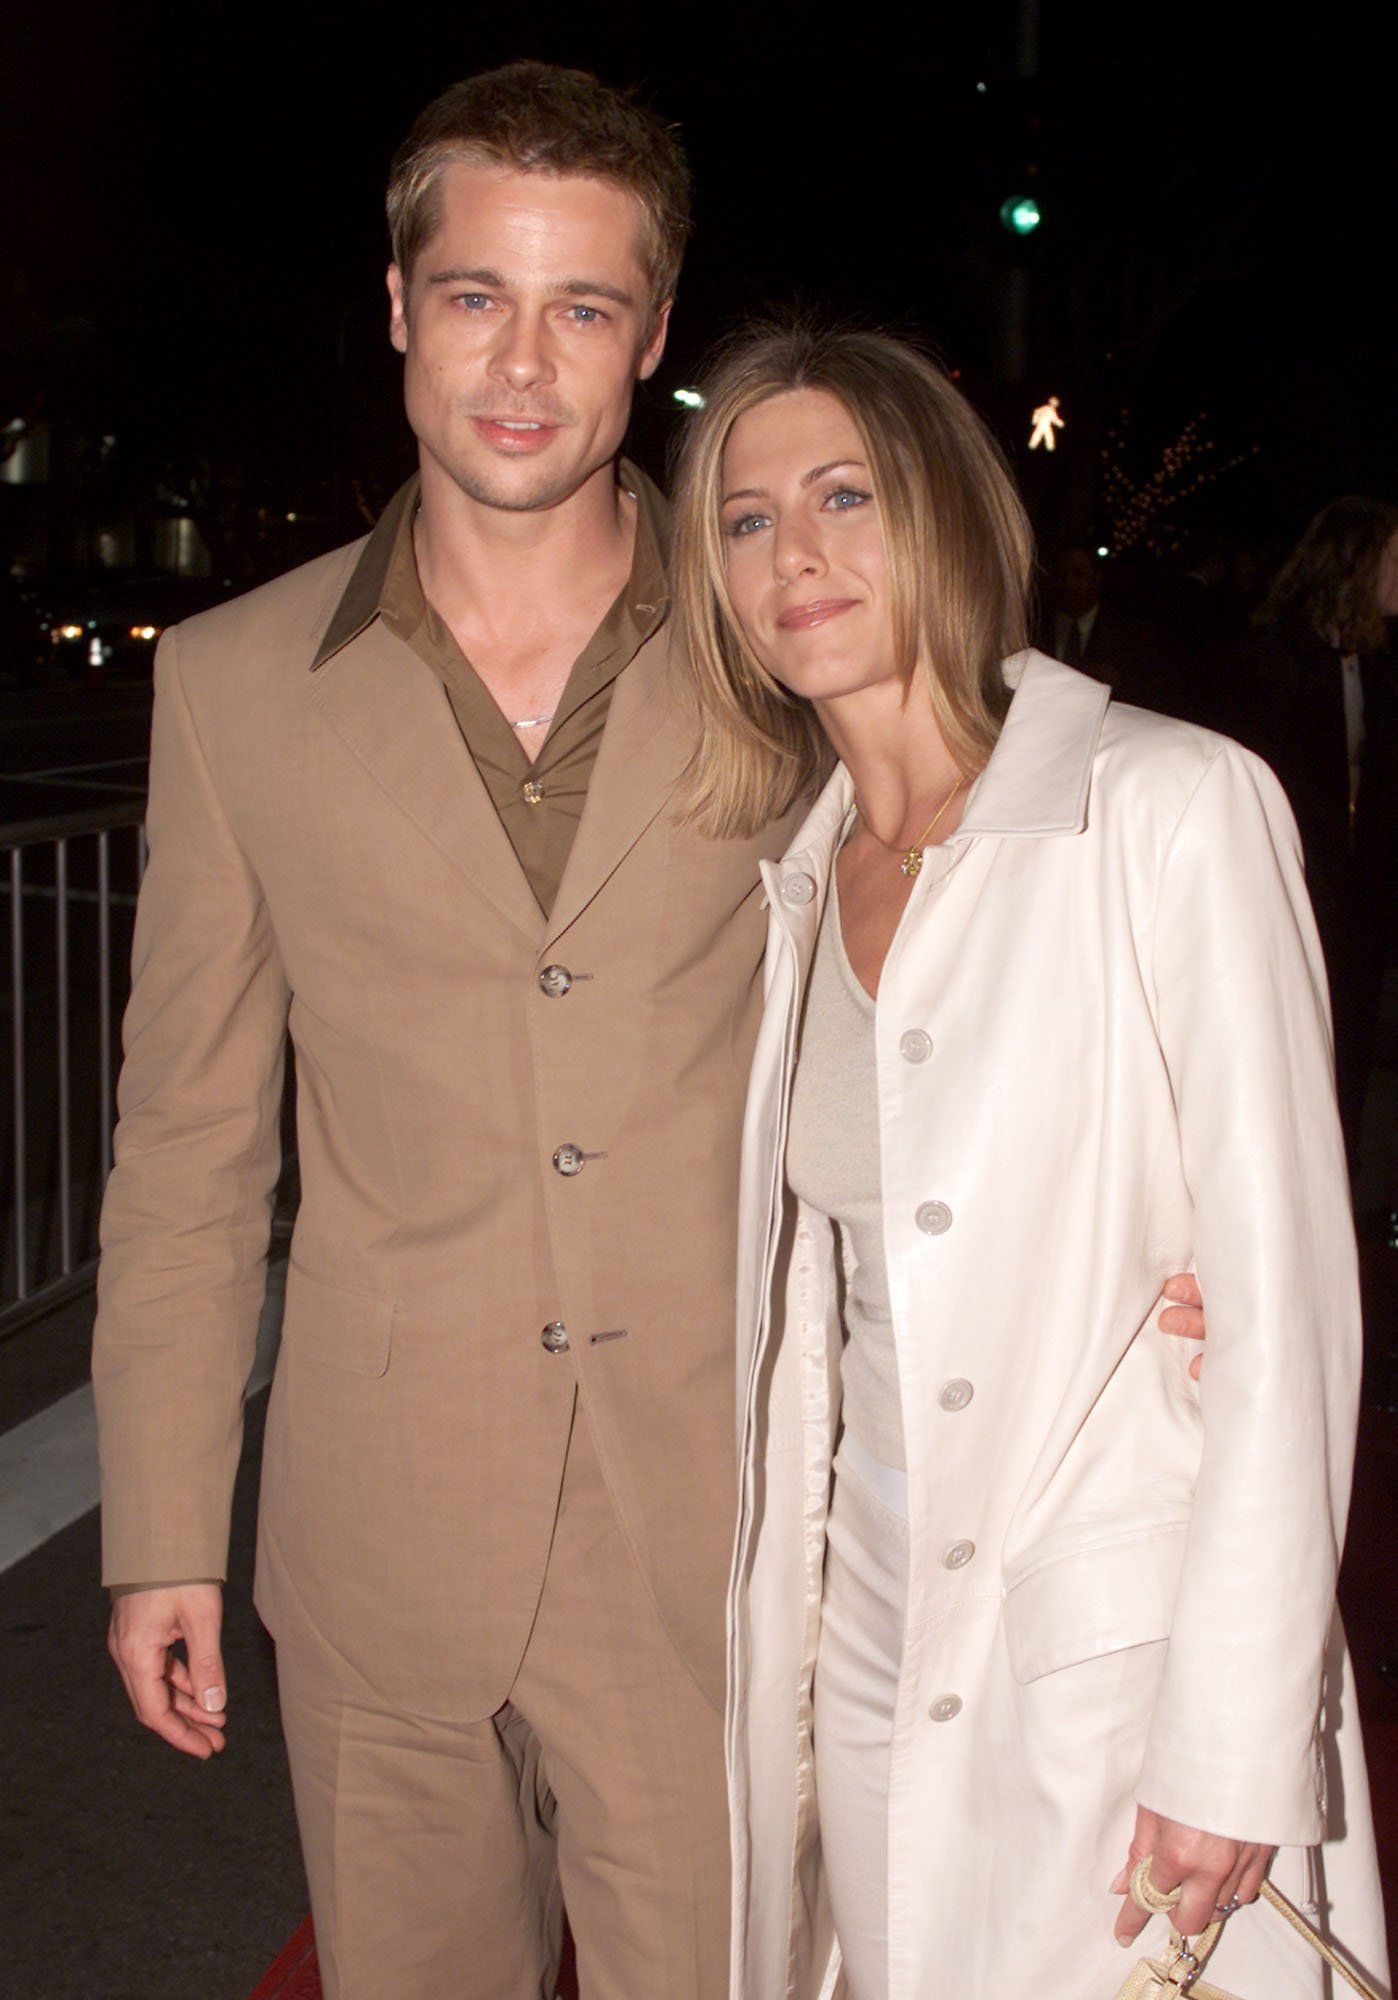 Brad Pitt and Jennifer Aniston attending the premiere of 'The Mexican.'  Source | Photo: Getty Images